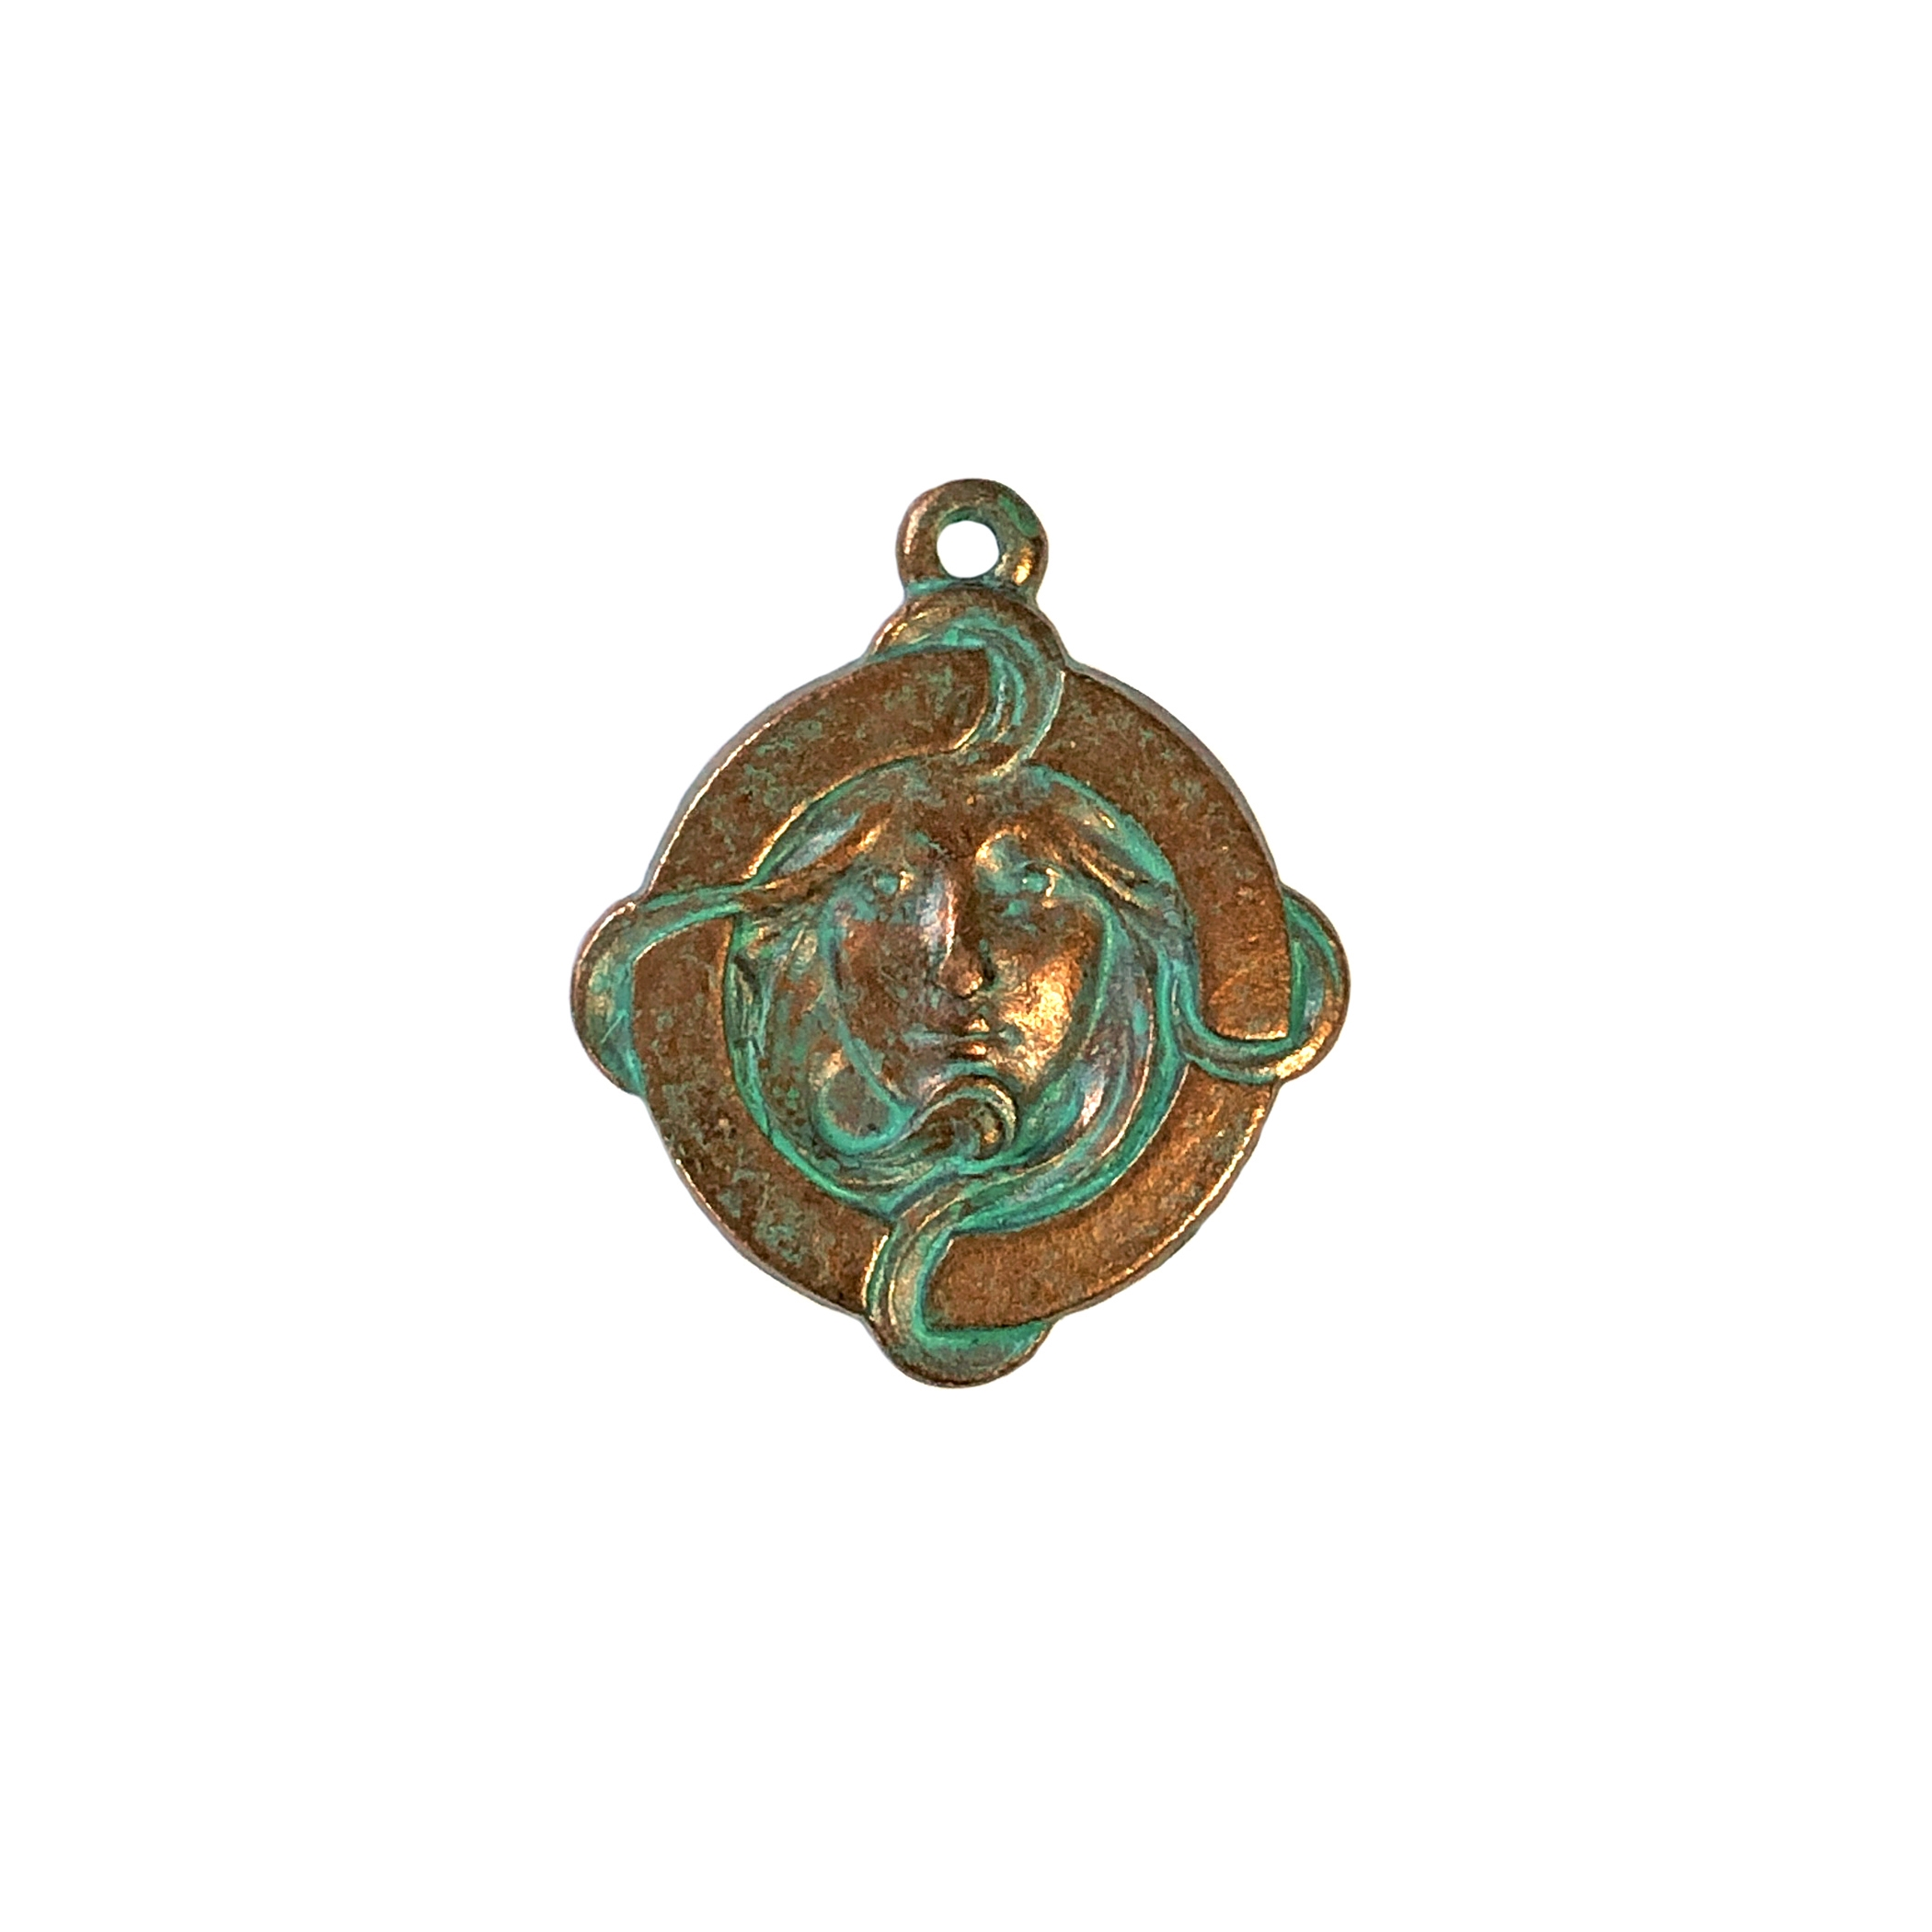 mucha lady pendant, weathered copper pewter, aqua pendant, lady pendant, pendant, pewter castings, US made, 1928 Company, b'sue by 1928, weathered copper pendant, 24x20mm, lady aqua pendant, copper, weathered, patina pendant, charm, jewelry pendant, 0295